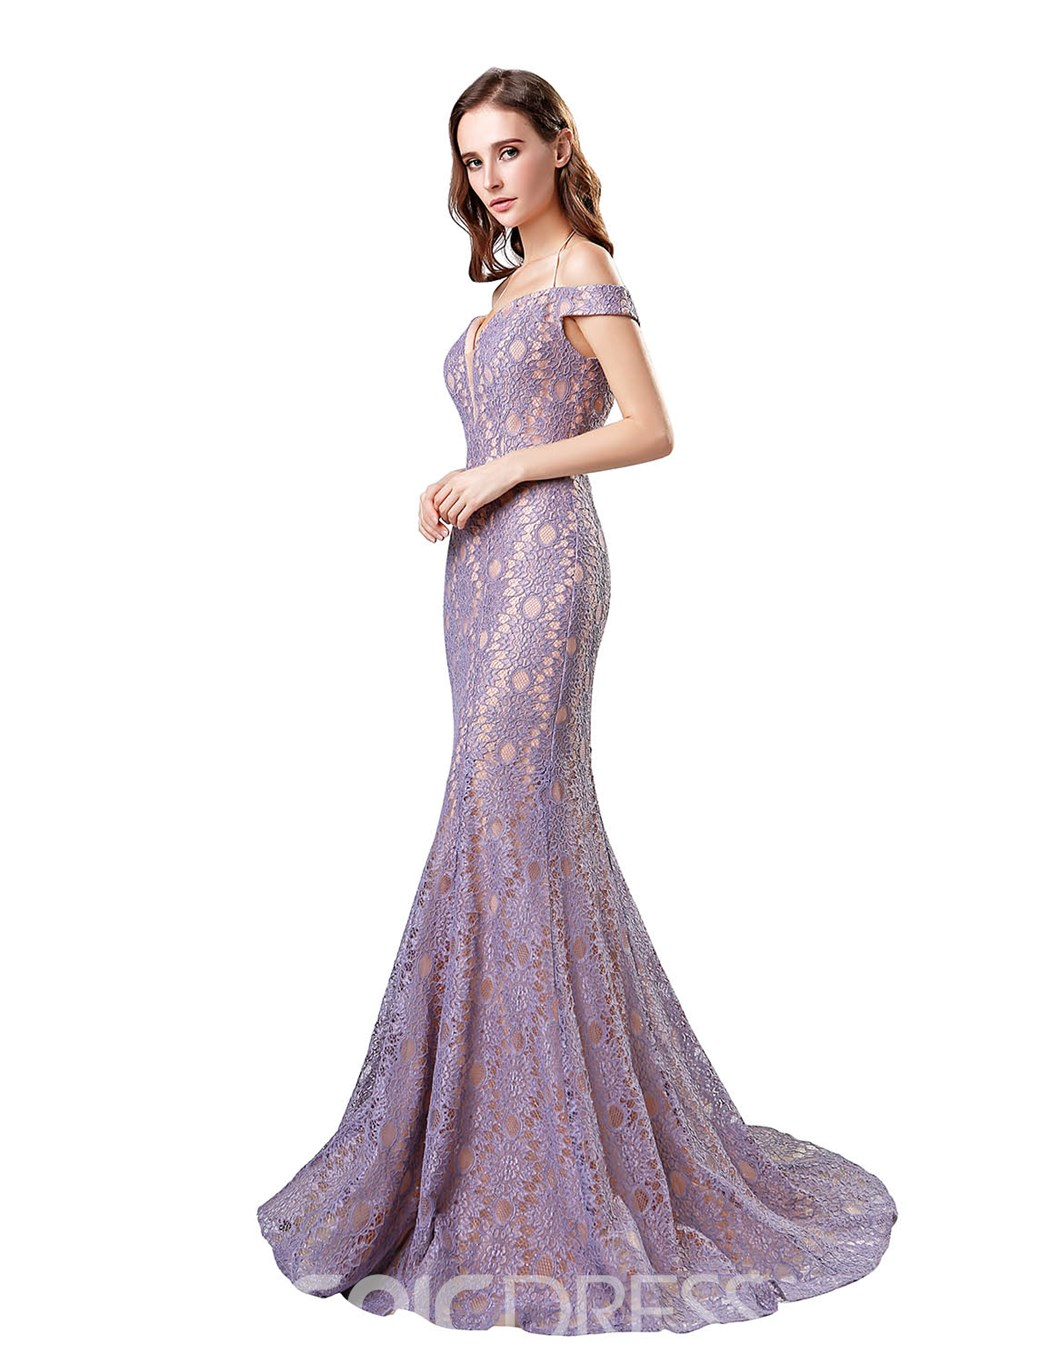 Ericdress Off The Shoulder Lace Mermaid Evening Dress